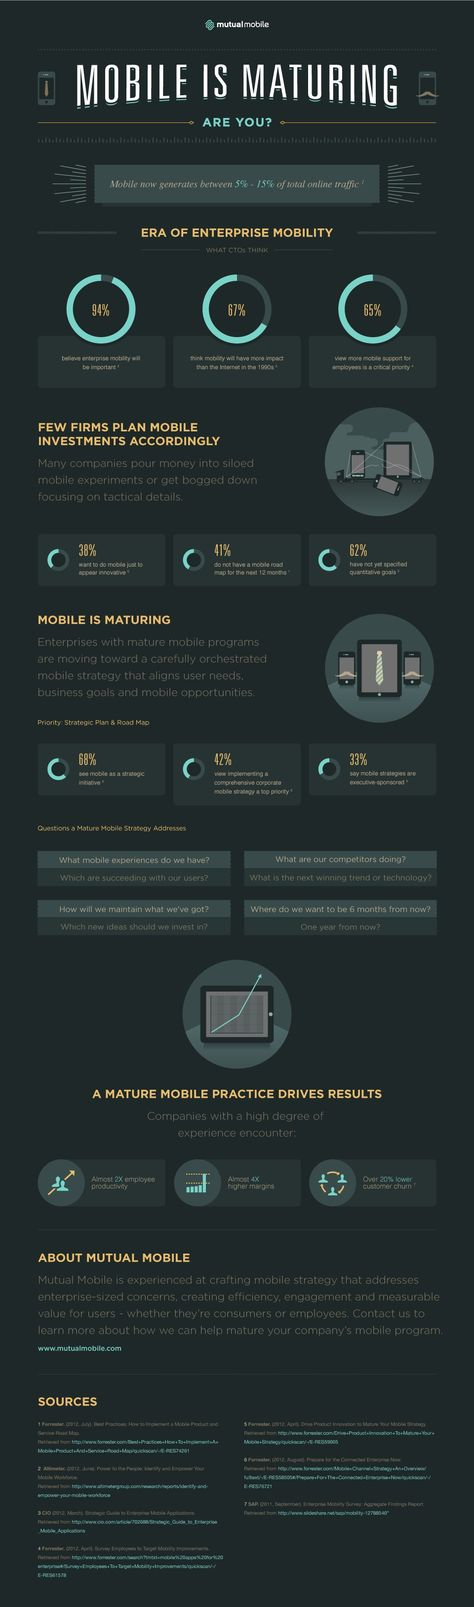 Mobile Is Maturing [Infographic]